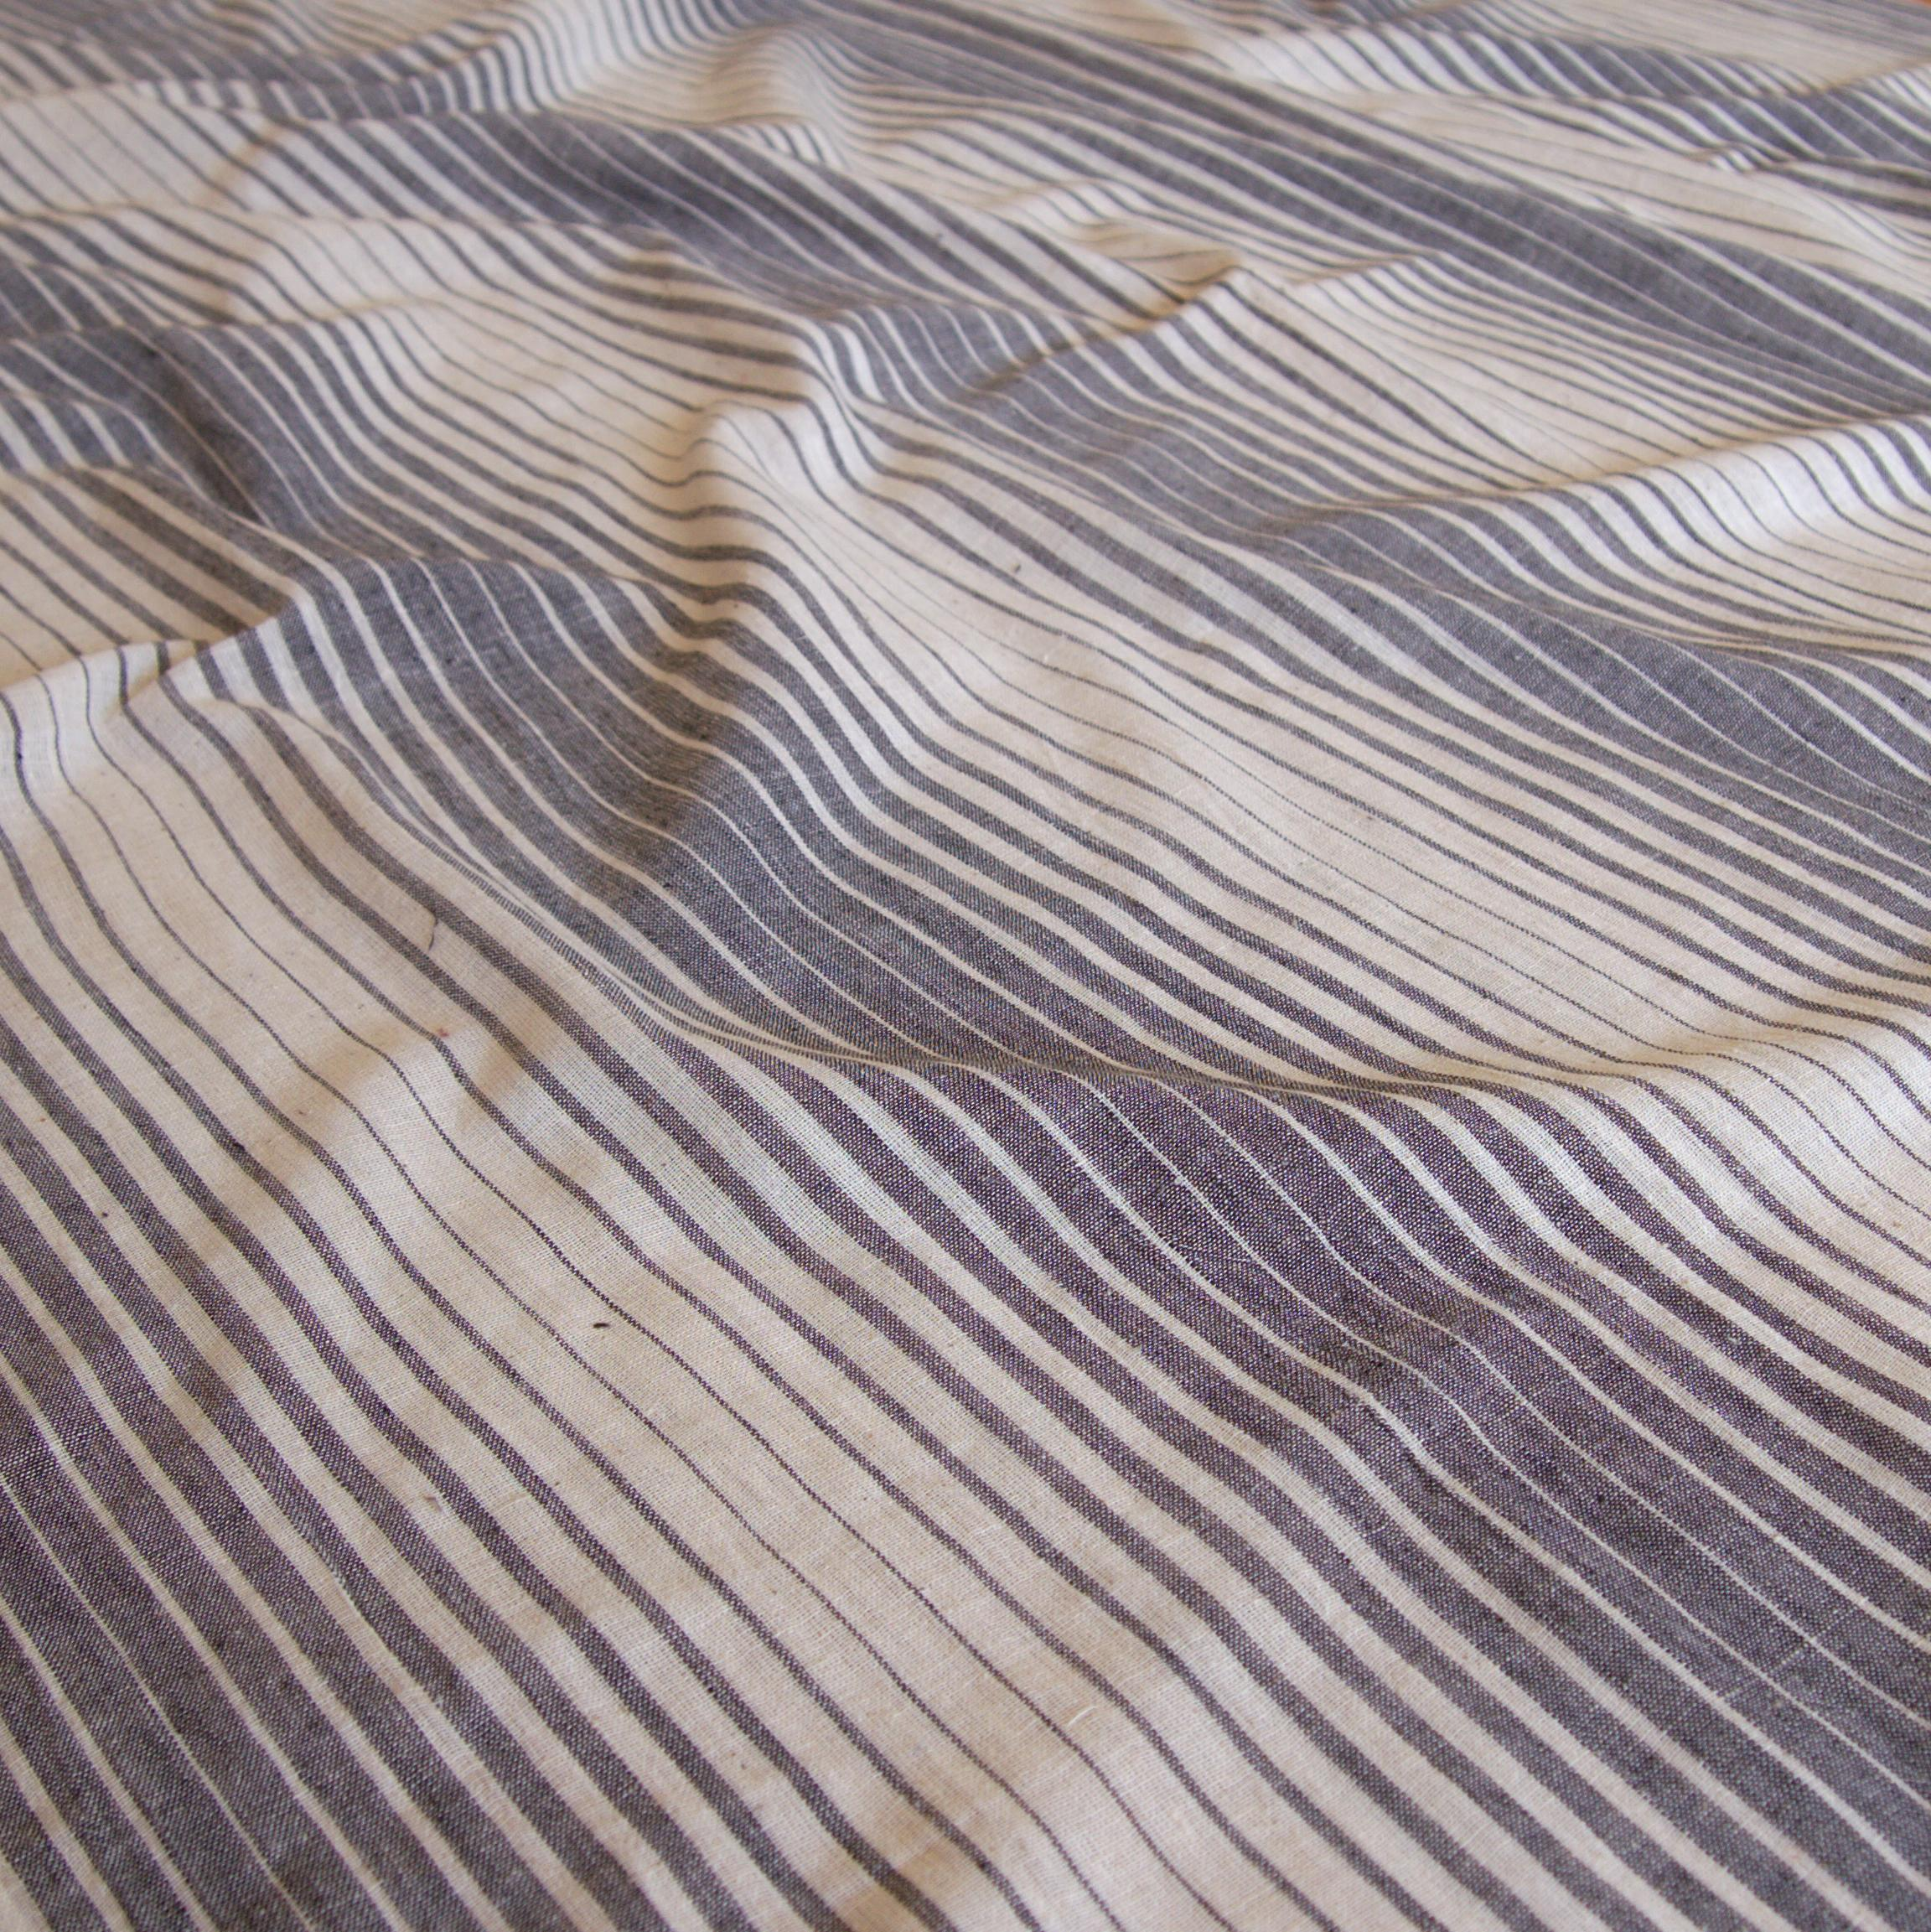 Organic Kala Cotton - Handloom Woven - Natural Dye - Charcoal Black - Fading Stripes - One By One - Contrast